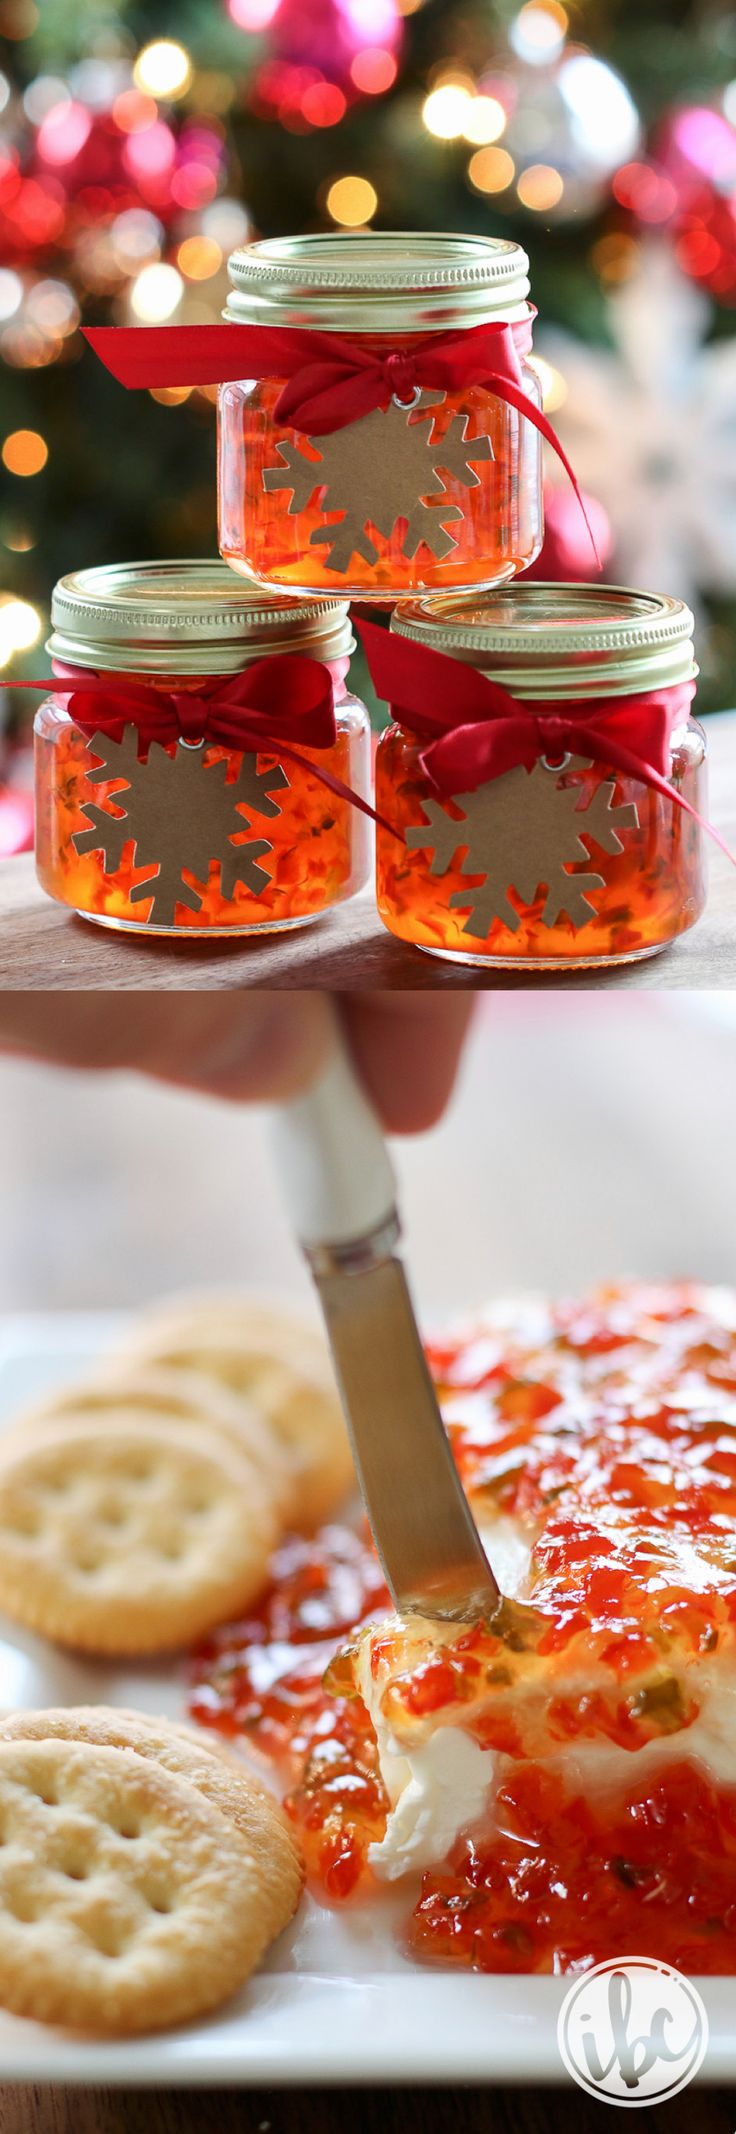 Red Pepper Jelly - homemade holiday gift PLUS easy impromptu Christmas appetizer recipe